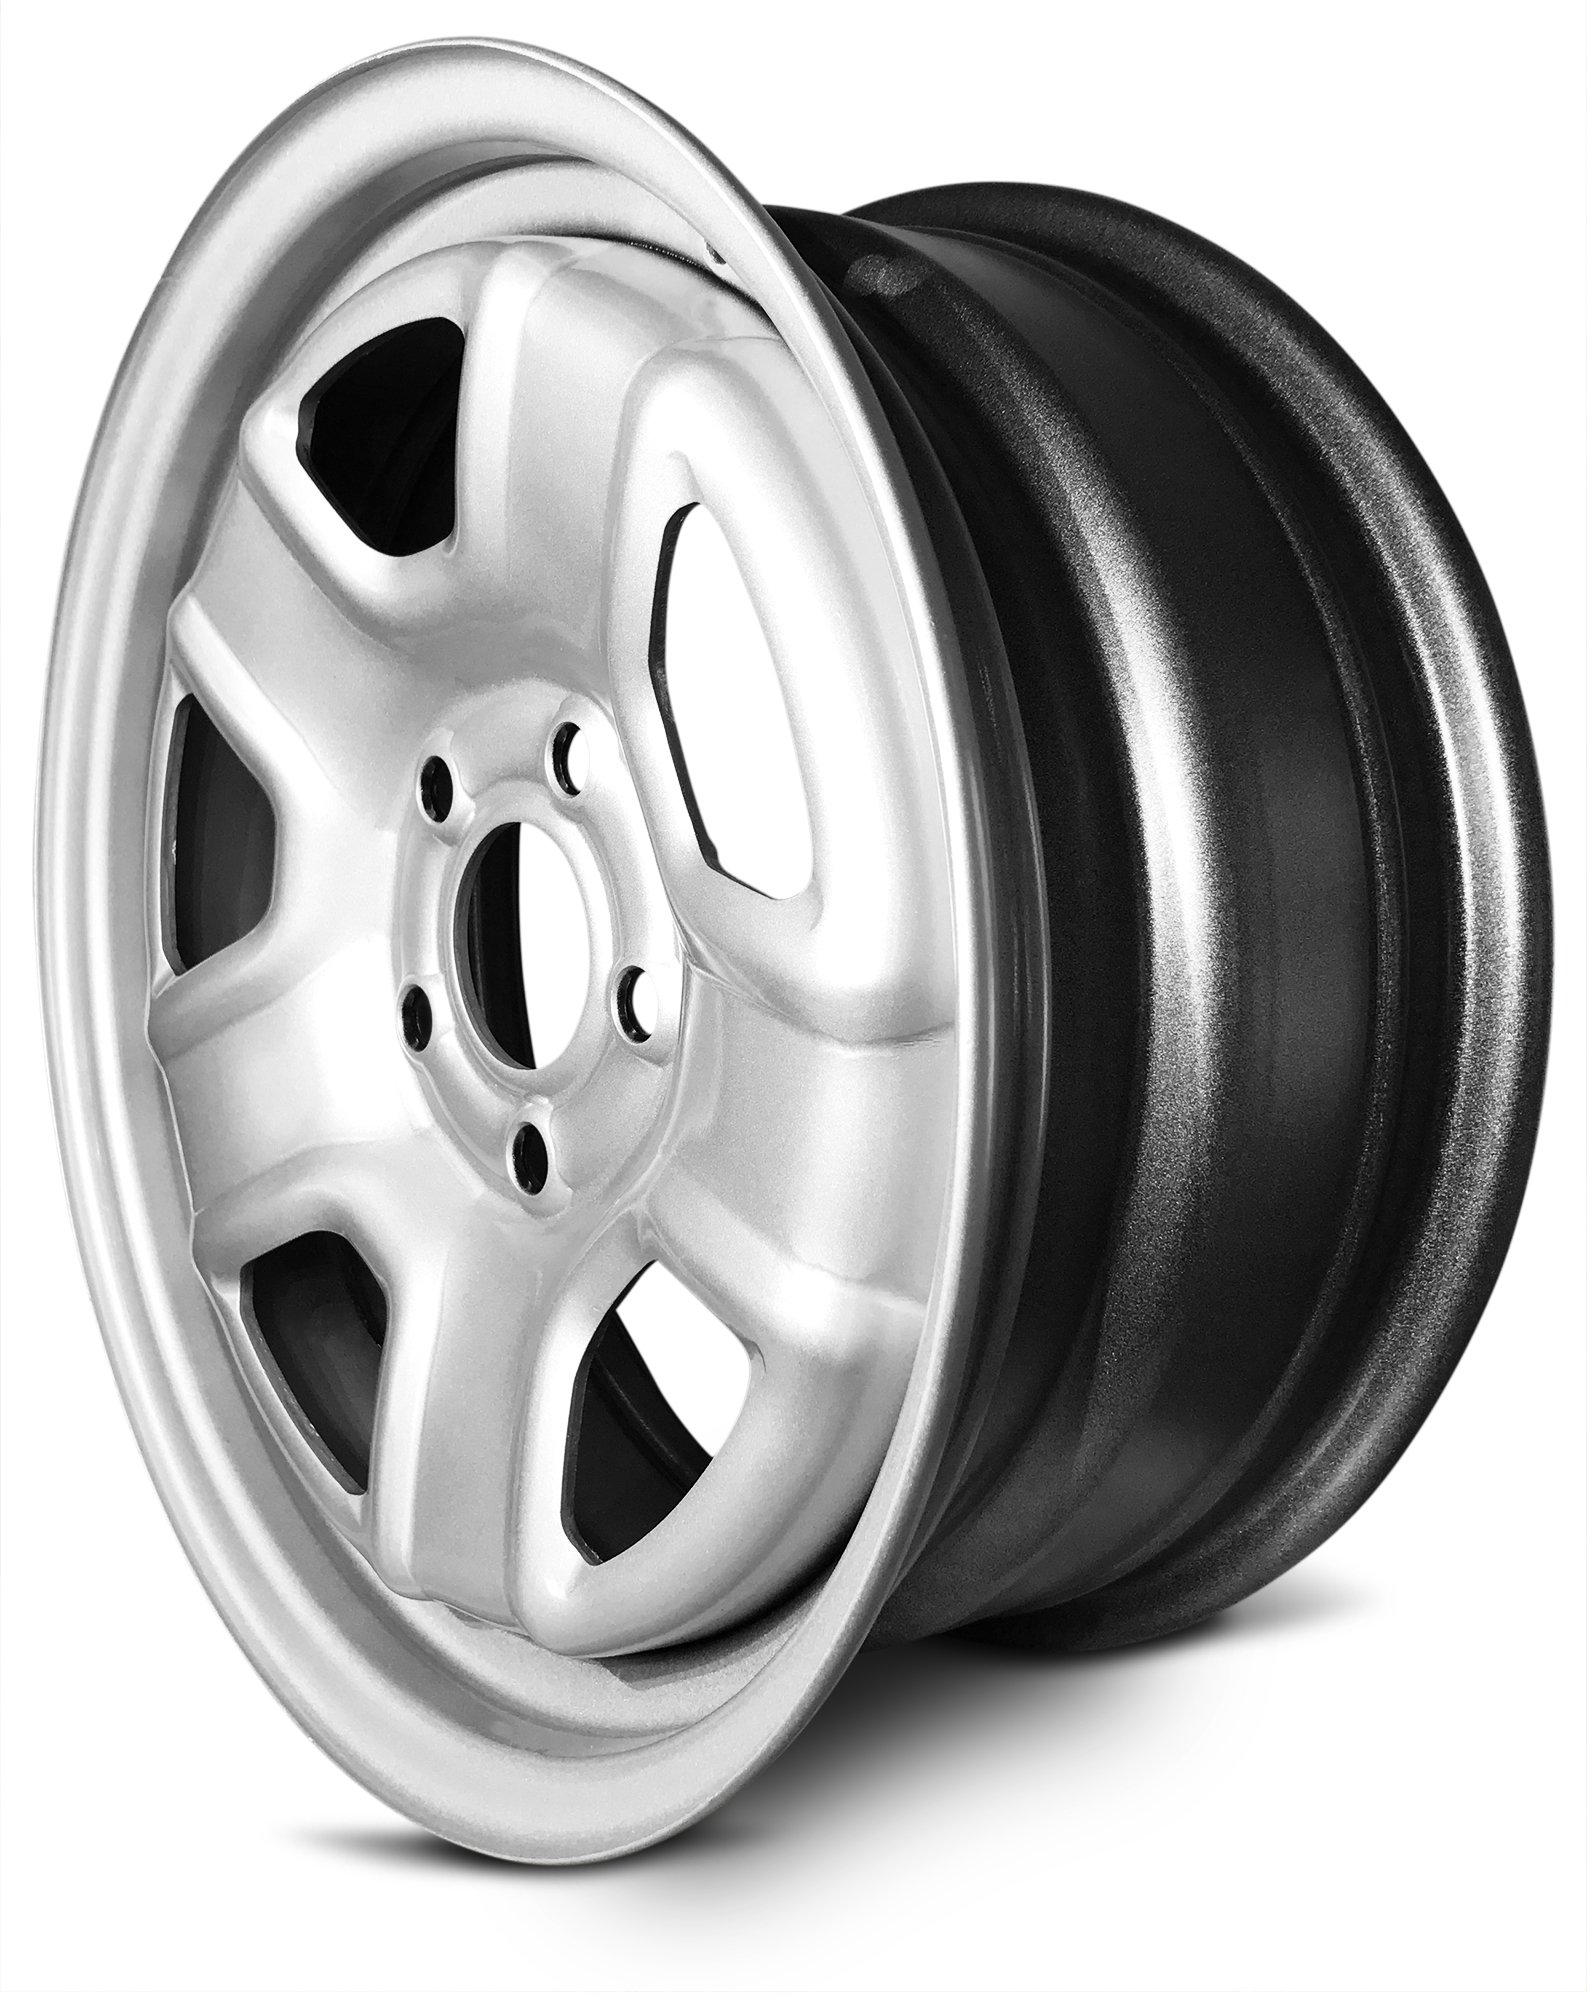 New 16 Inch Jeep Patriot Compass 5 Lug Silver Replacement Steel Wheel Rim 16x6.5 Inch 5 Lug 67.1mm Center Bore 40mm Offset WAA by Road Ready Wheels (Image #2)